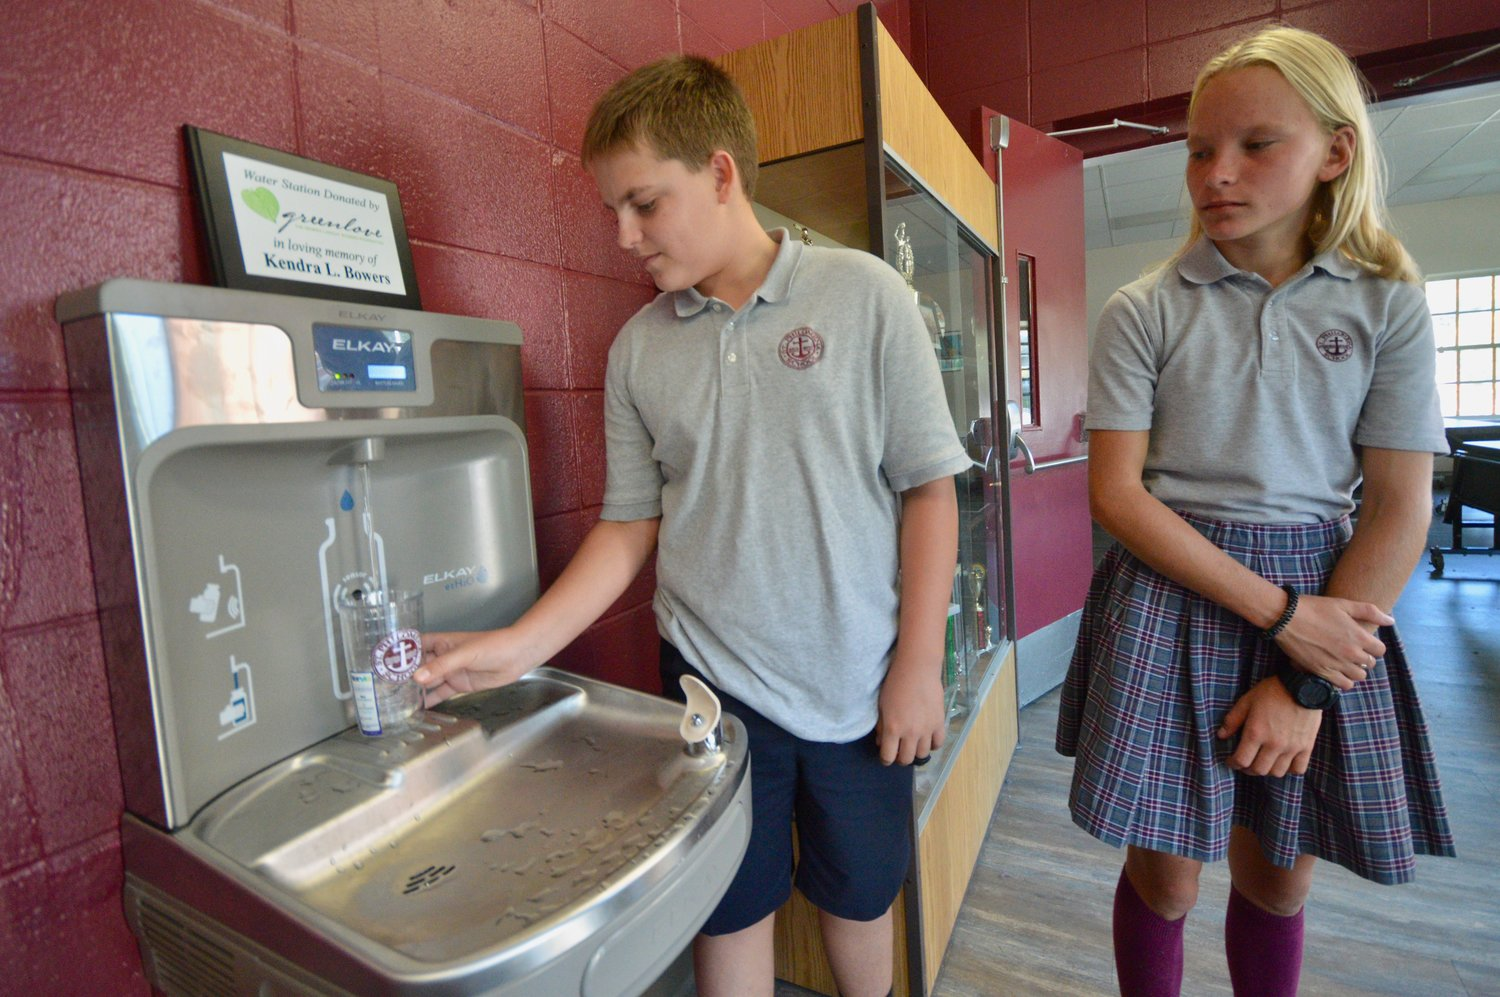 Chris DeSantis and Julia Pelczarski, both eighth-graders at St. Philomena School, try out the new water bottle filling station that was donated by the Greenlove Foundation.